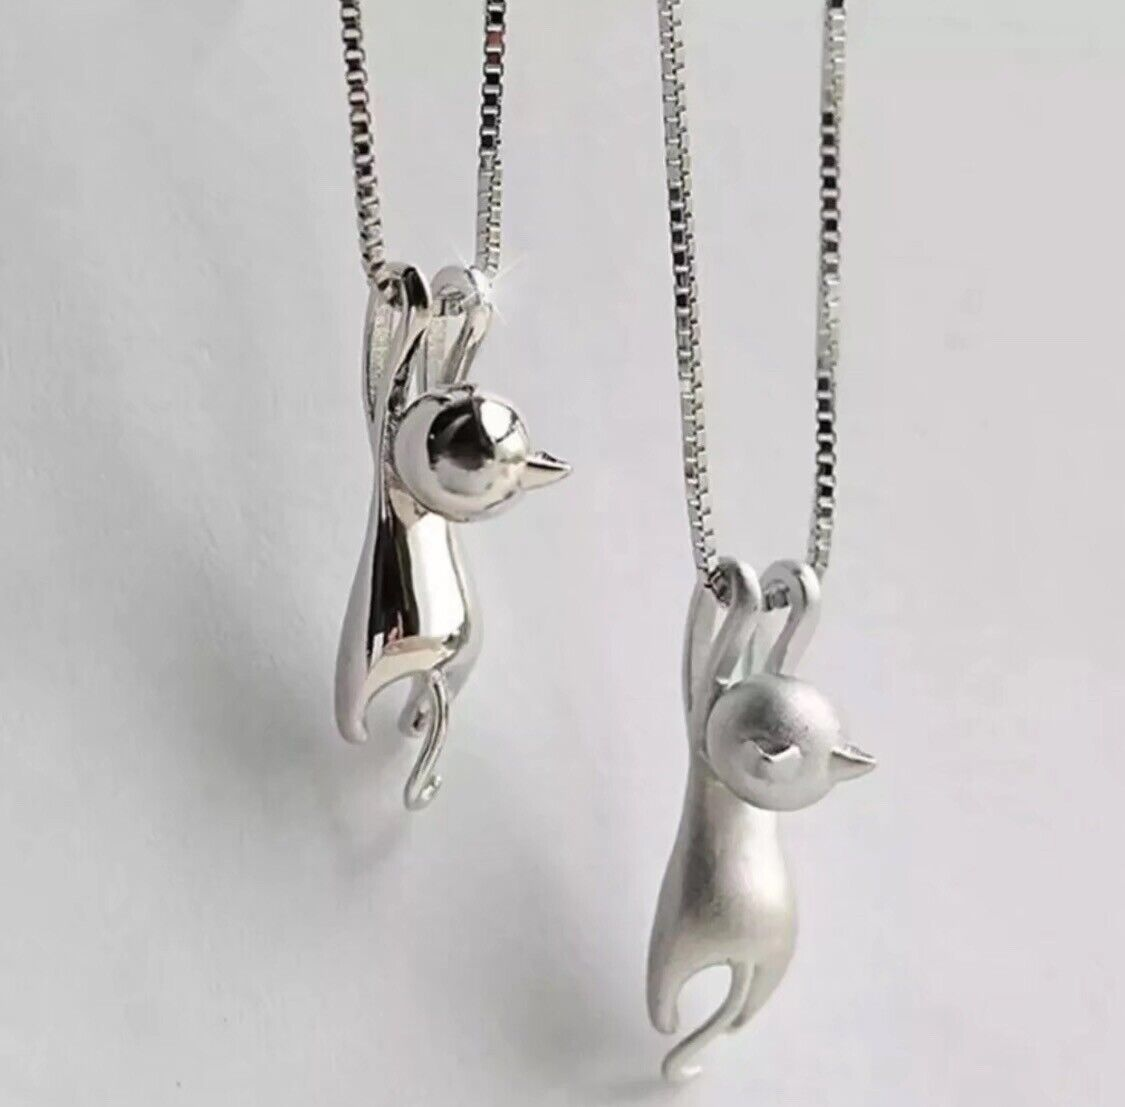 Jewellery - Cat Pendant Chain Necklace 925 Sterling Silver Women's Jewellery Gift New Uk